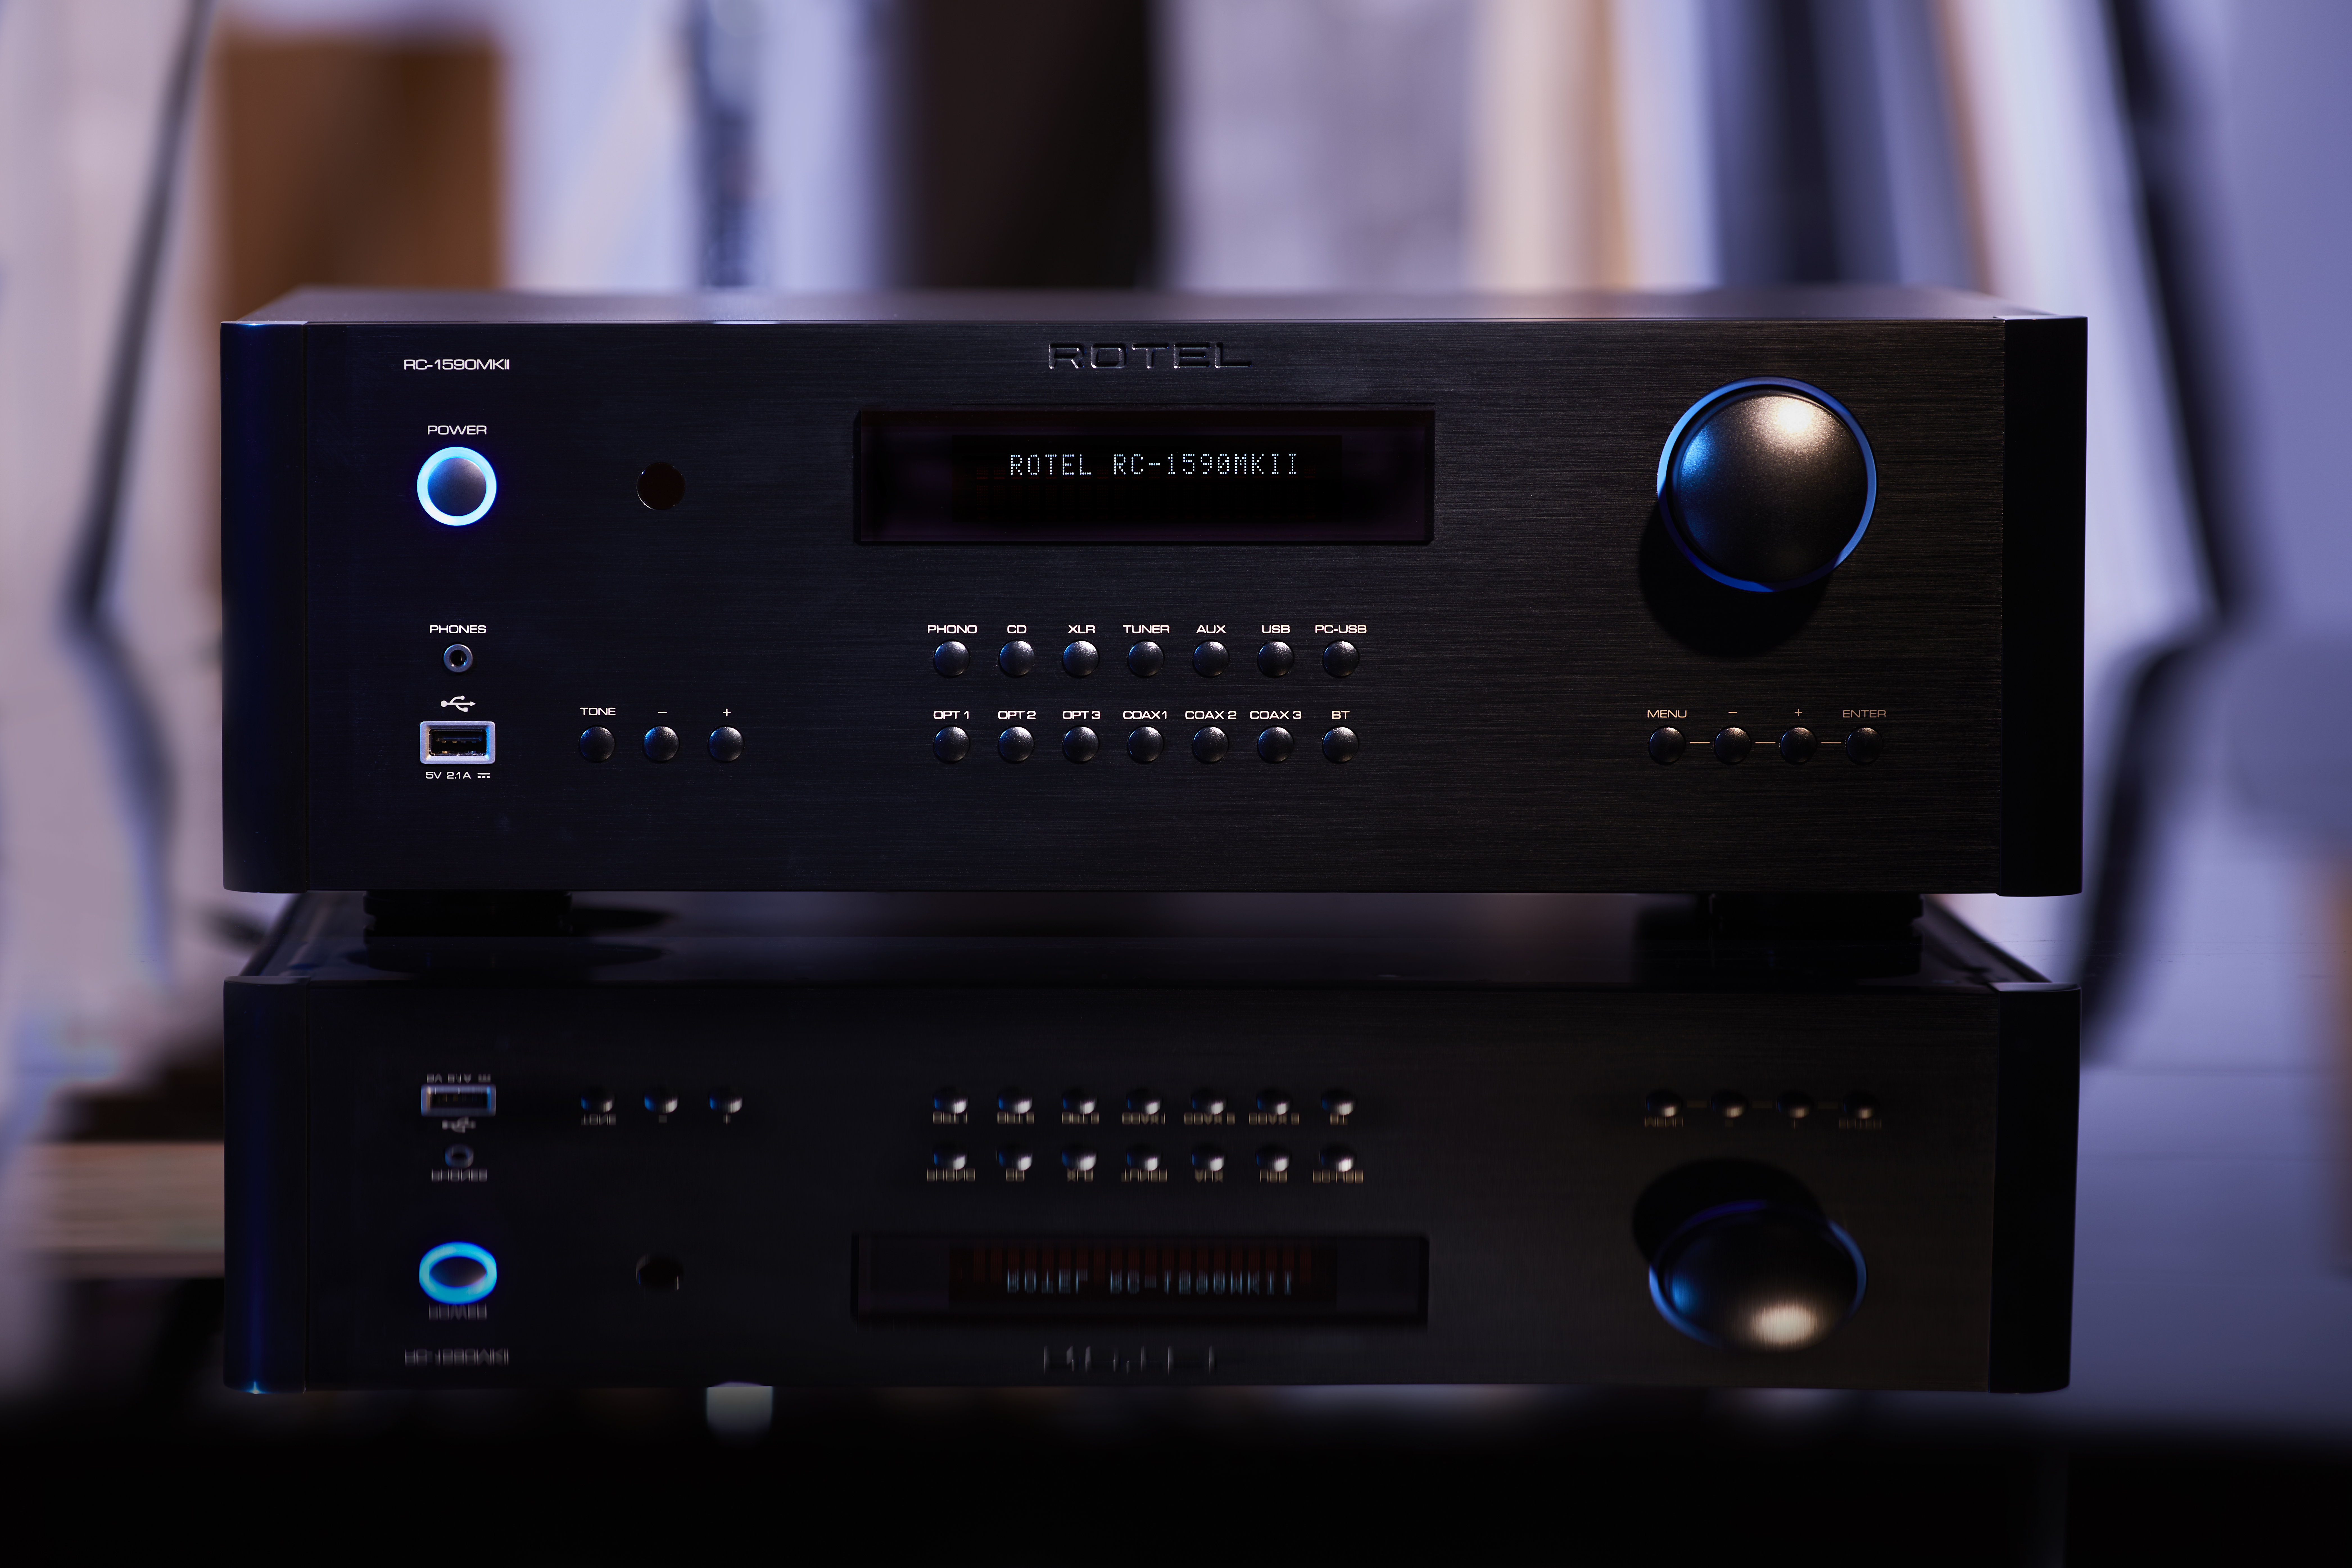 Rotel's Award Winning Stereo Preamplifiers Announced as MKII Models